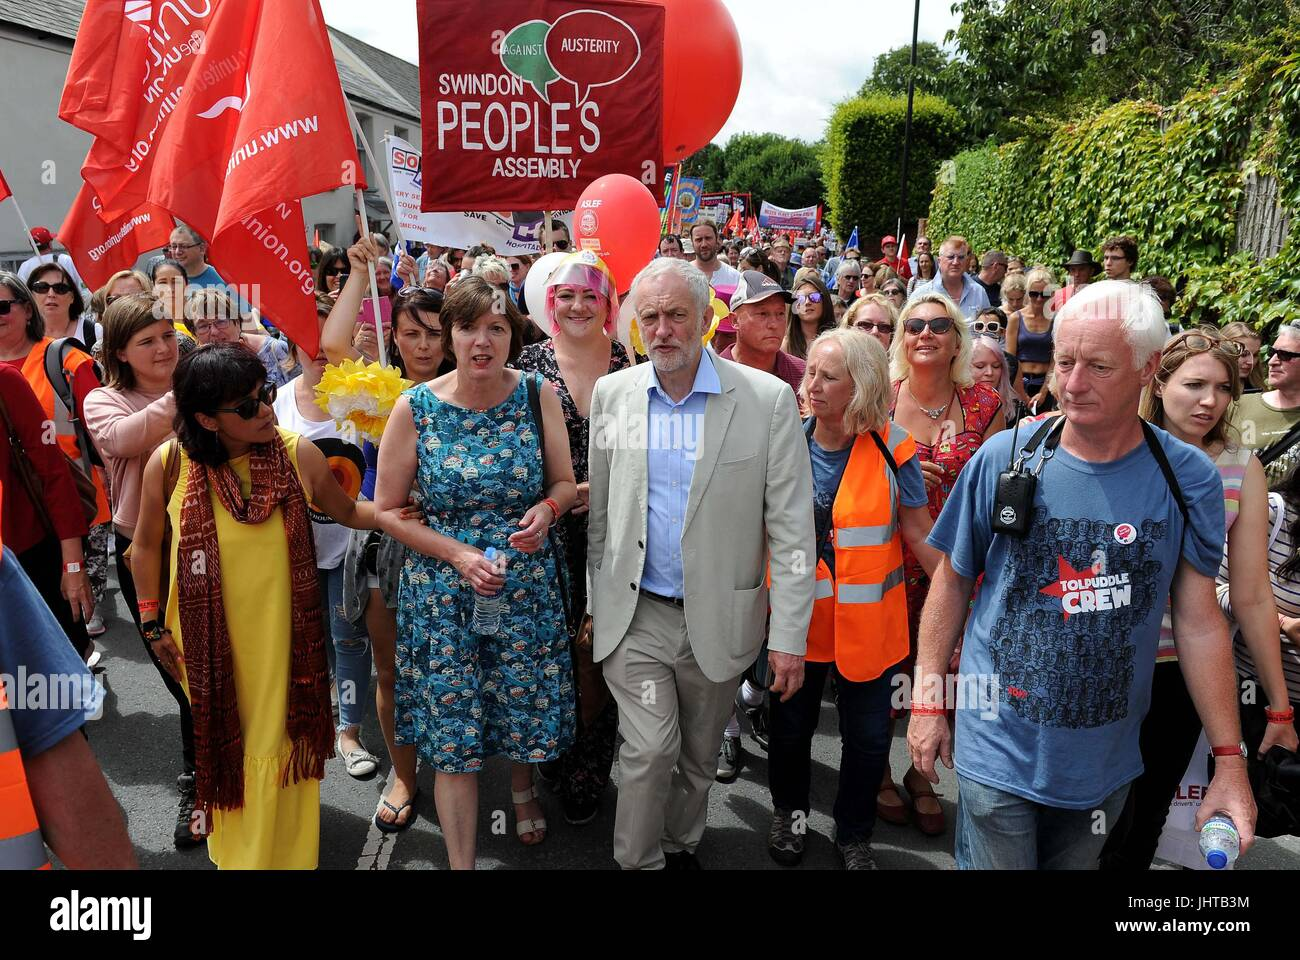 Jeremy Corbyn MP, Labour leader and Frances O'Grady, General Secretary of the British Trades Union Congress - Stock Image